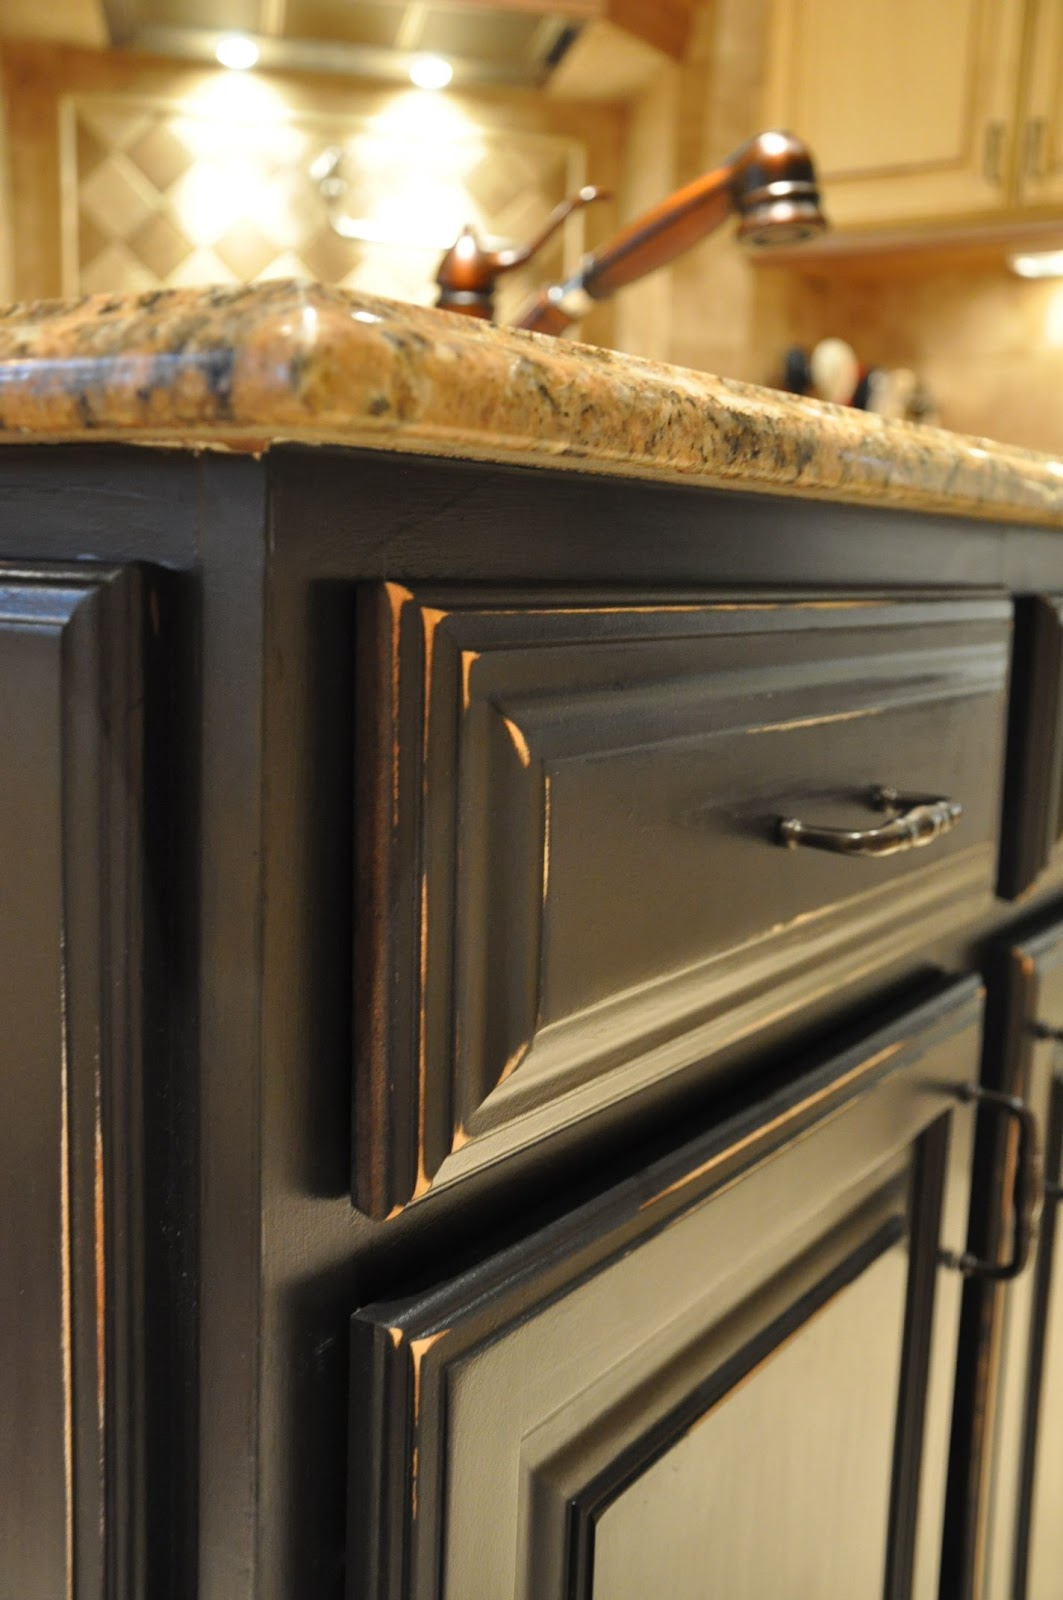 distressed kitchen island candles how to paint a part 1 evolution of style there are couple spots that more than i d like but some brilliant readers suggested touching it up with black stain